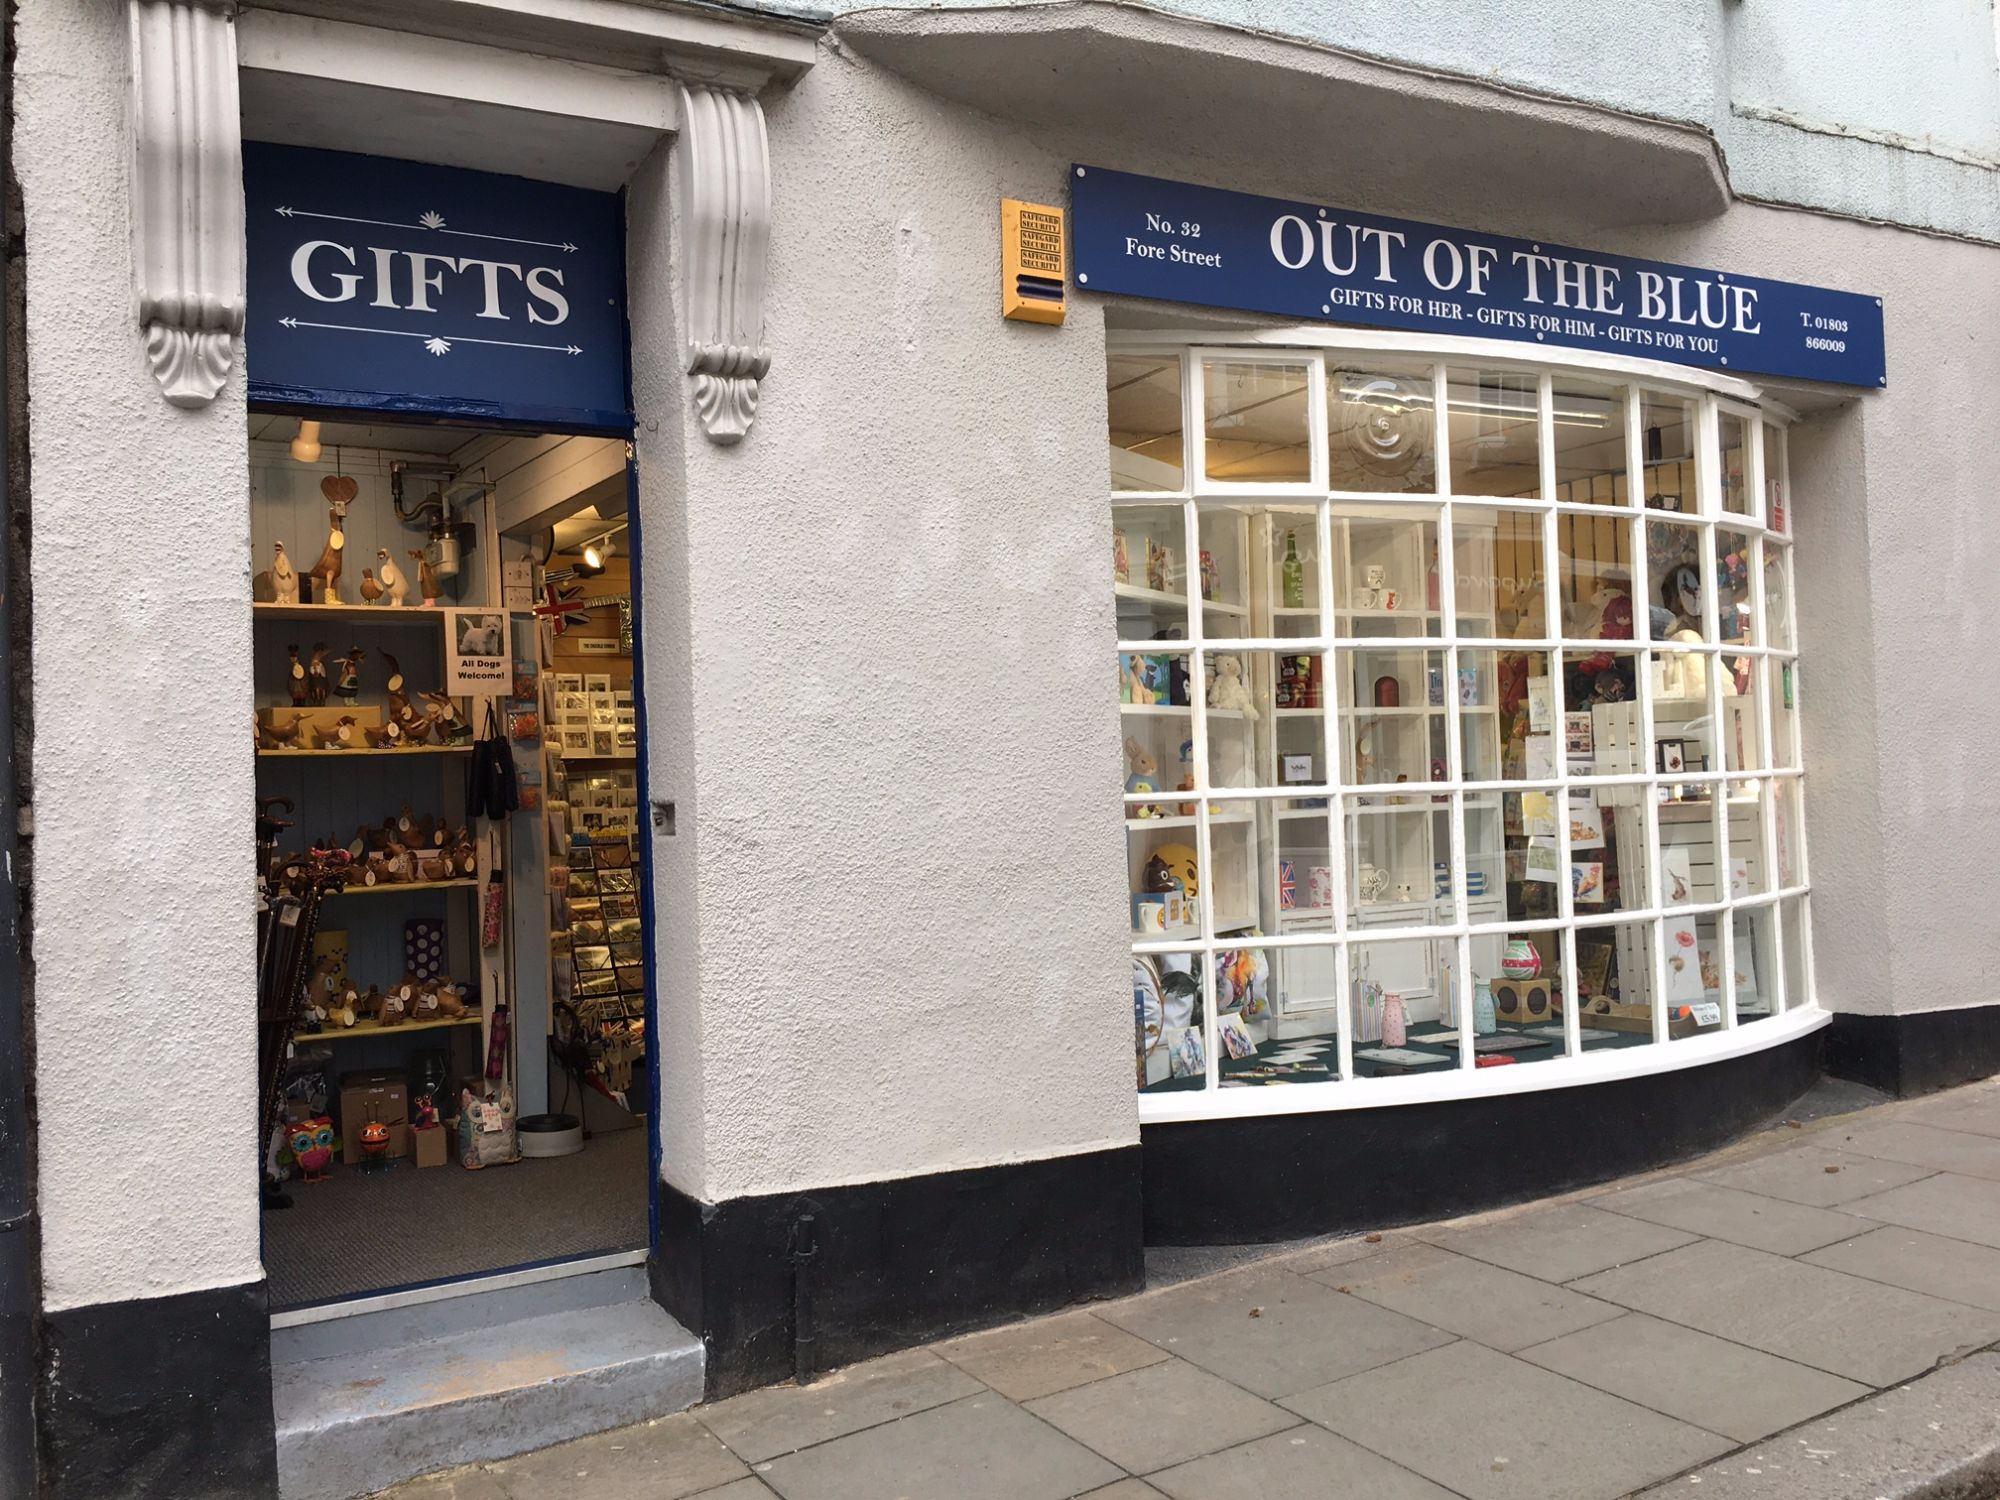 Out of the Blue Gift Shop in Totnes